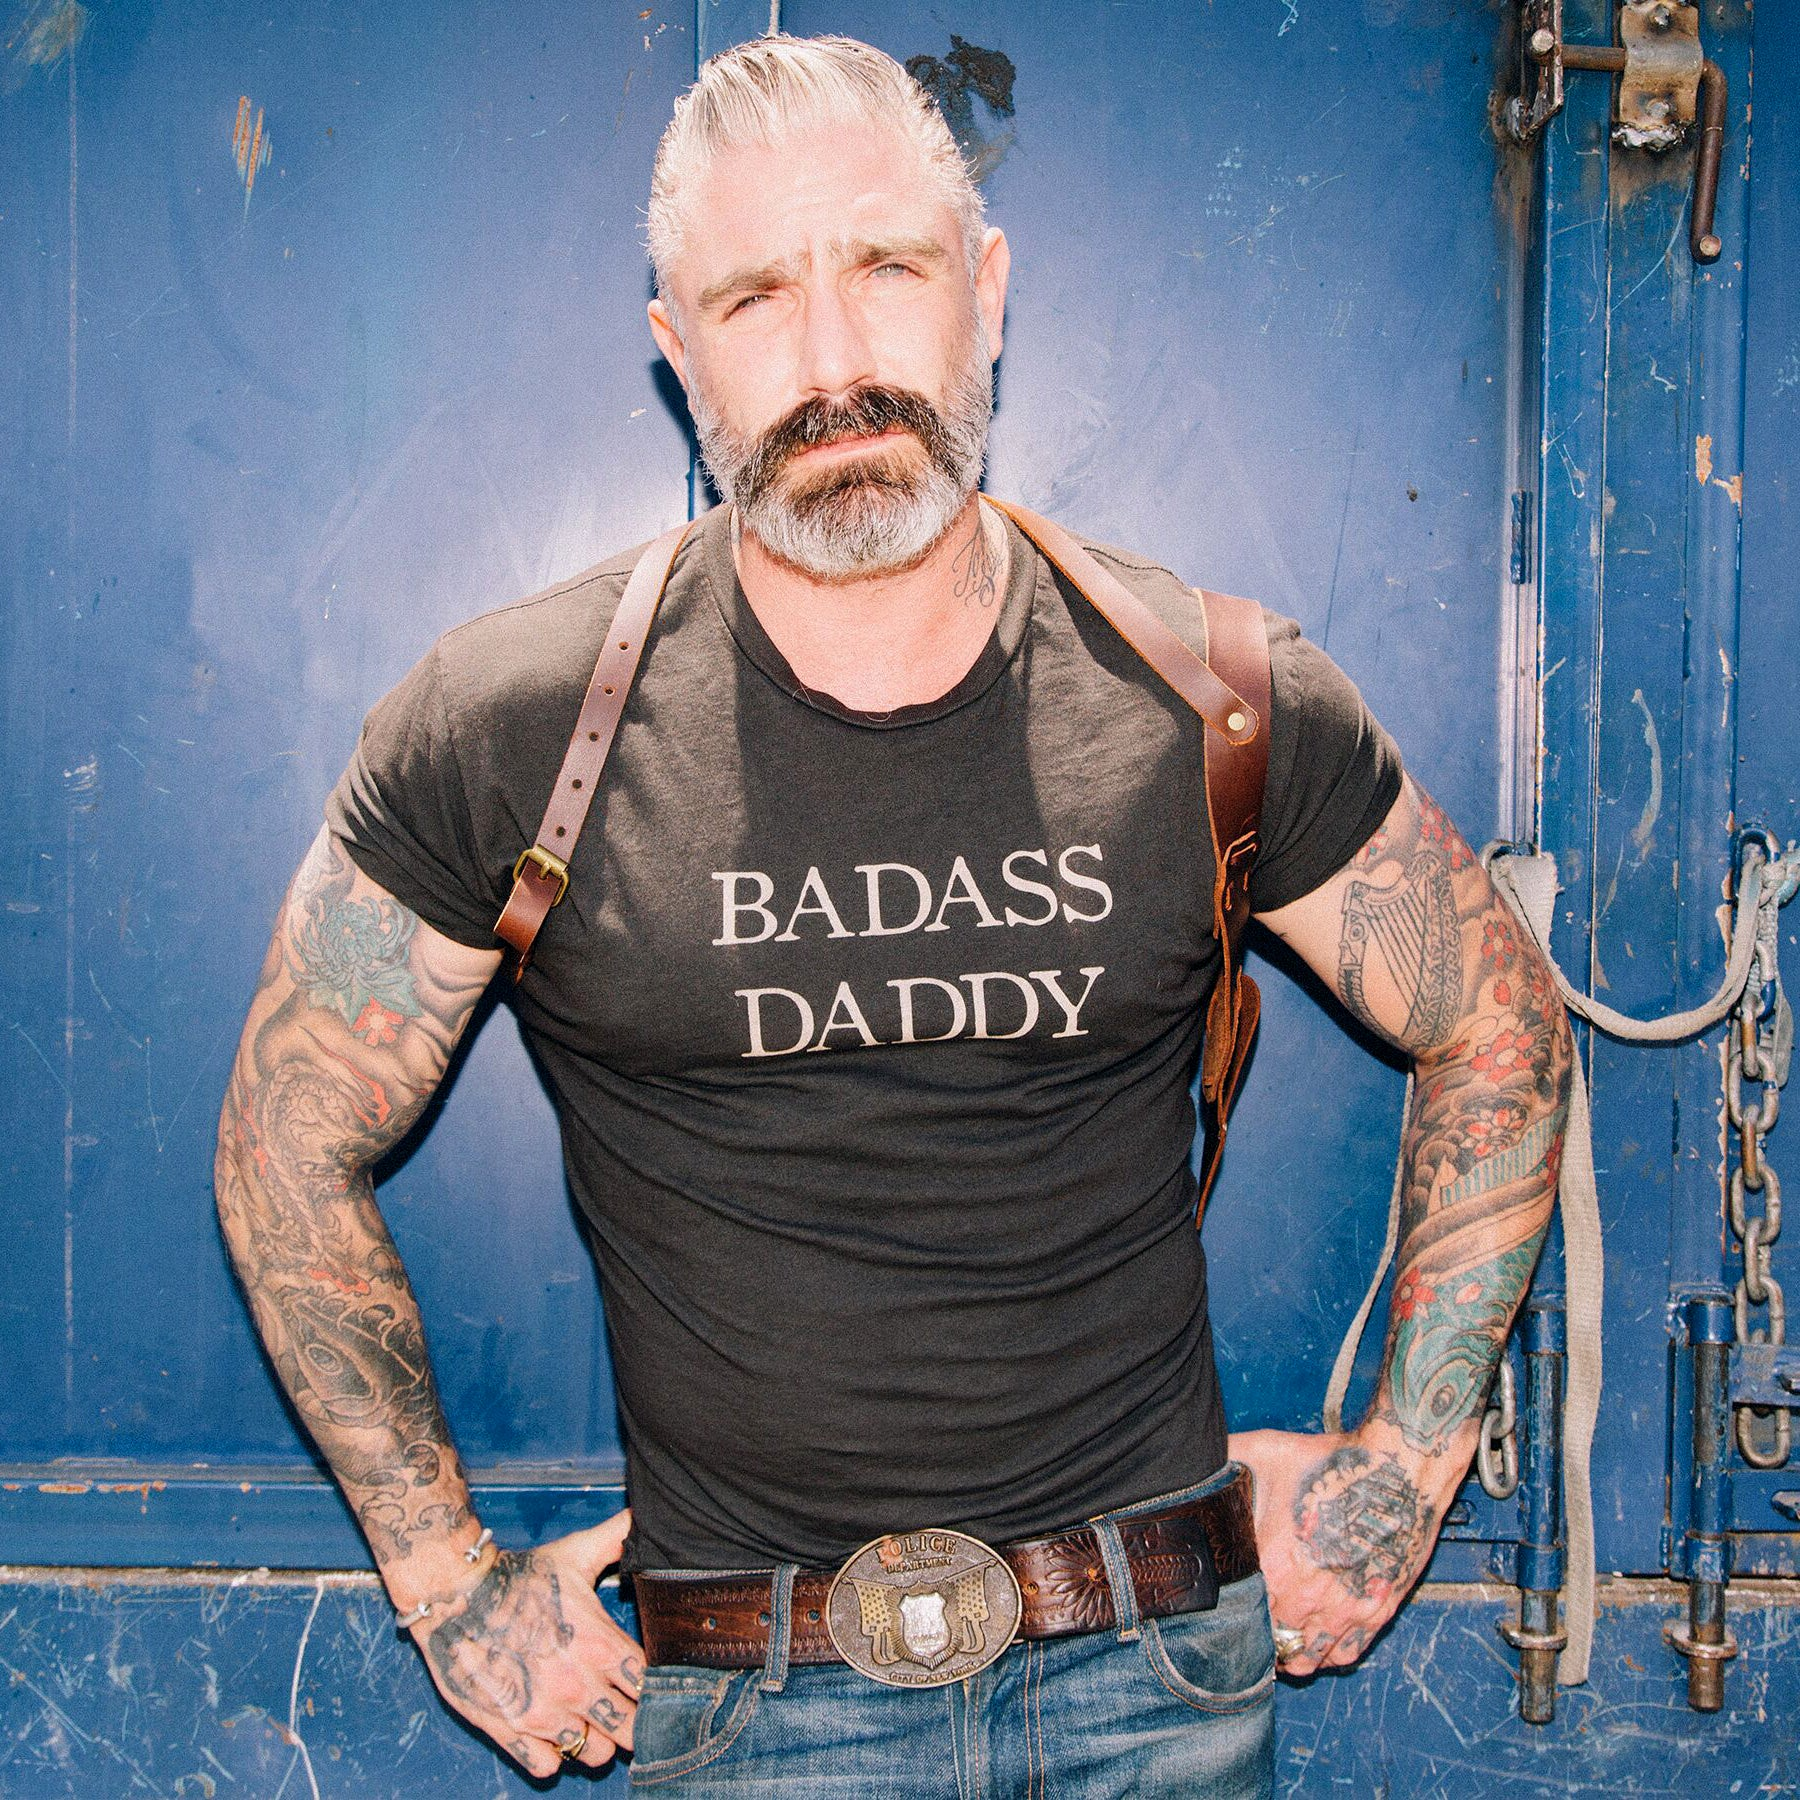 Badass Daddy Statement Tee